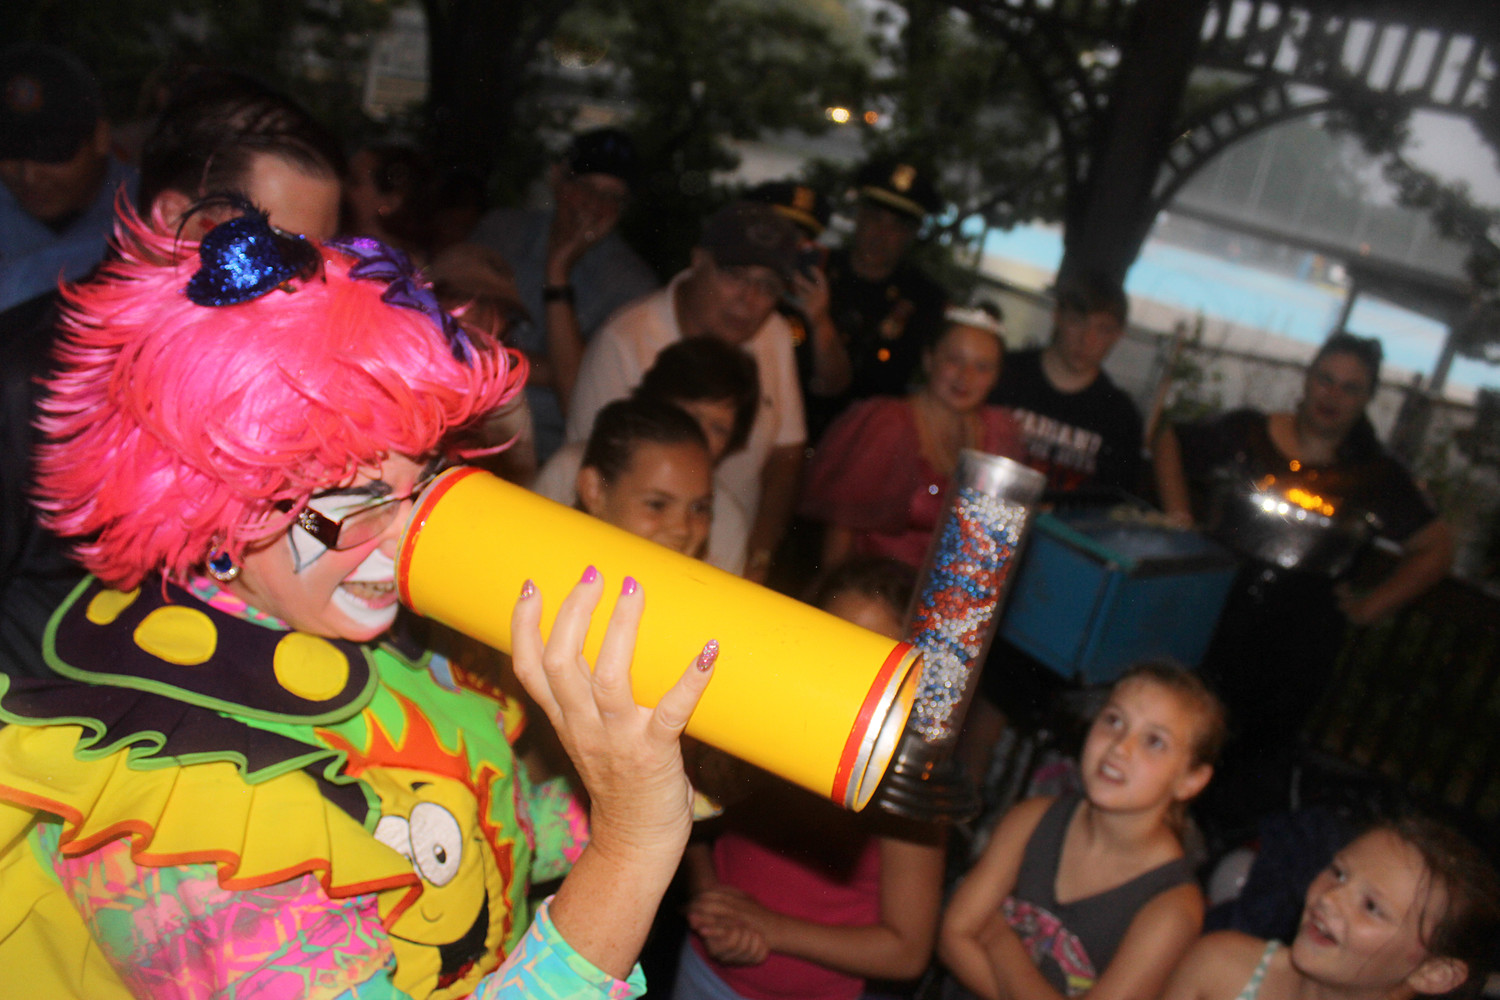 Annabelle the Clown performed her magic show for everyone under the gazebo, drawing cheers and laughs from children and adults alike.